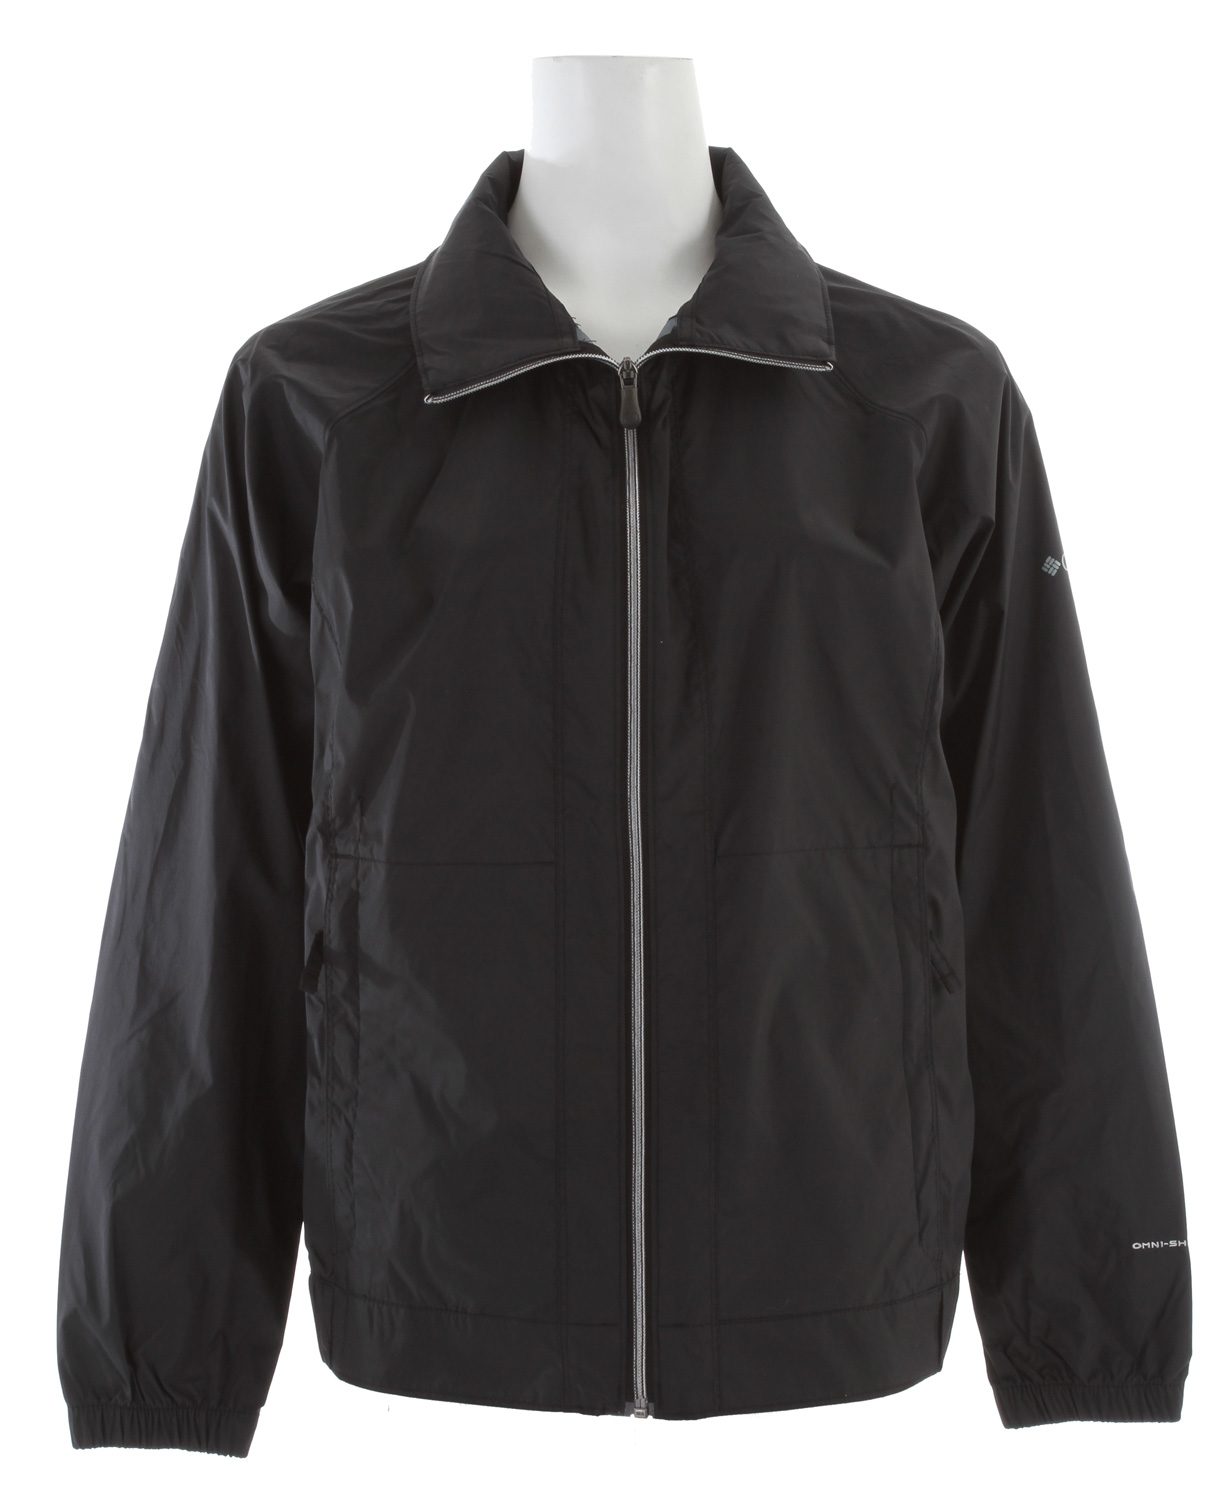 Columbia Switchback Jacket Black - $23.95